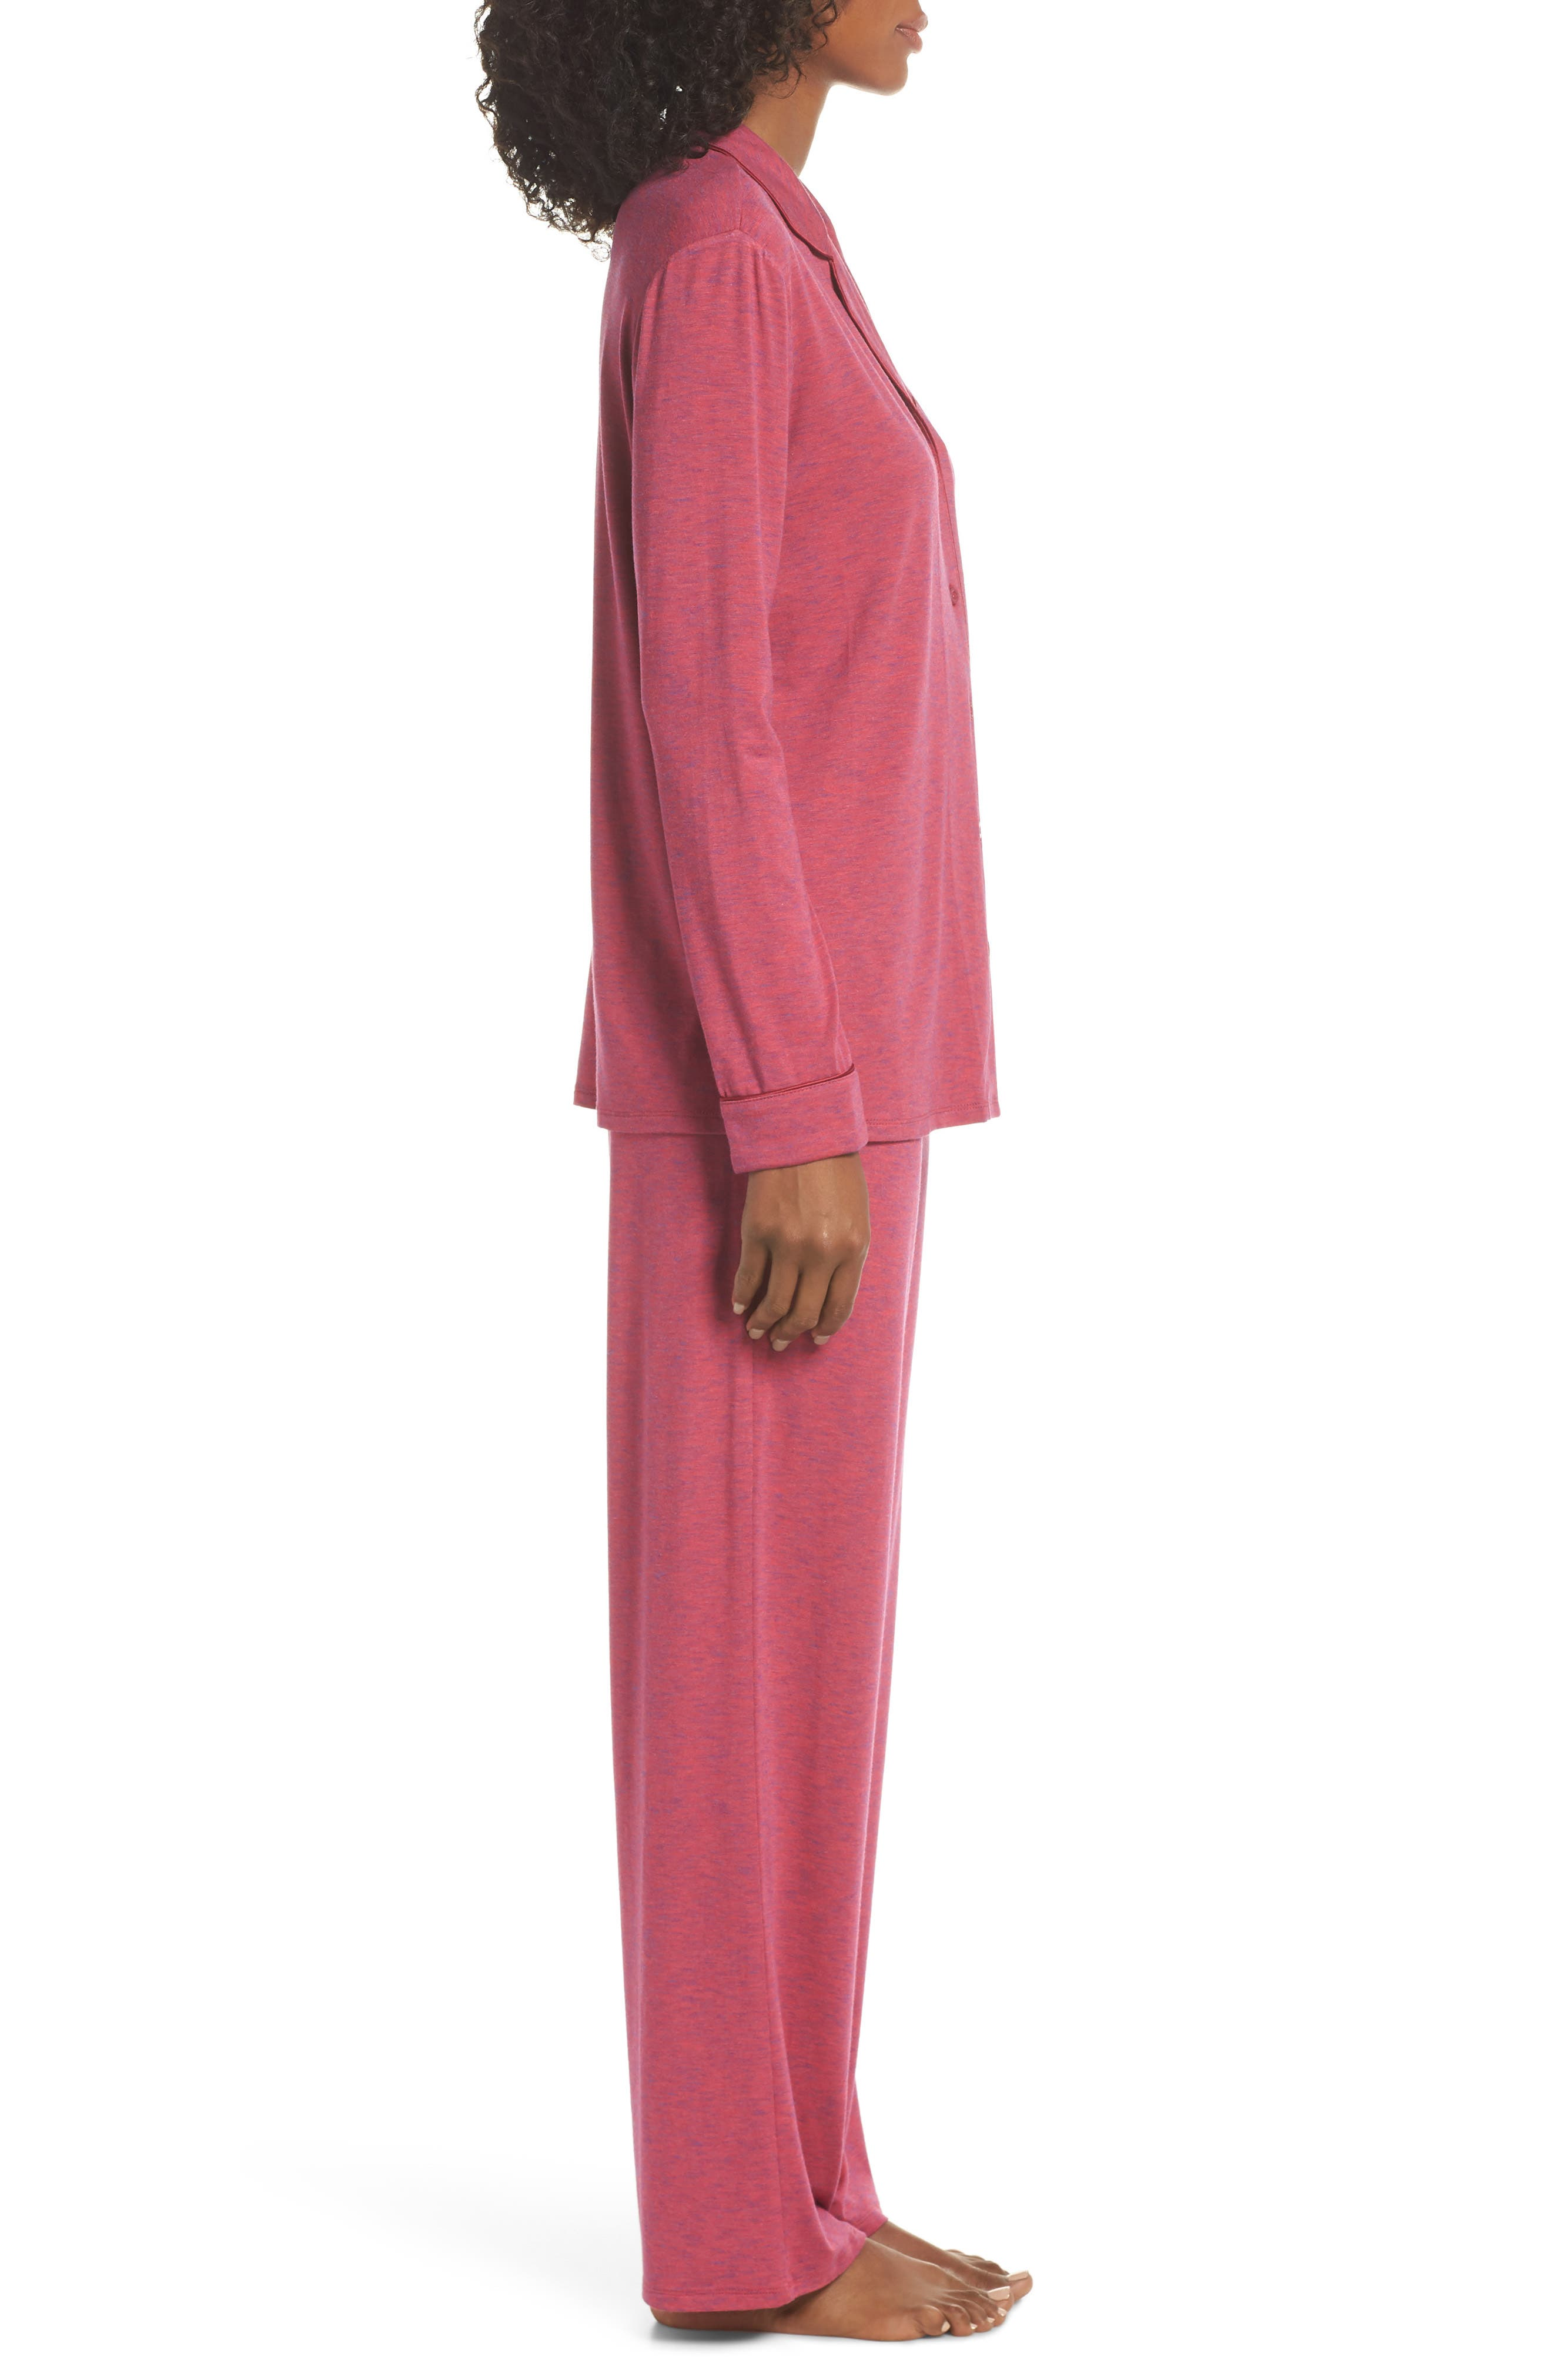 NORDSTROM LINGERIE,                             Moonlight Pajamas,                             Alternate thumbnail 3, color,                             BURGUNDY SPACEDYE